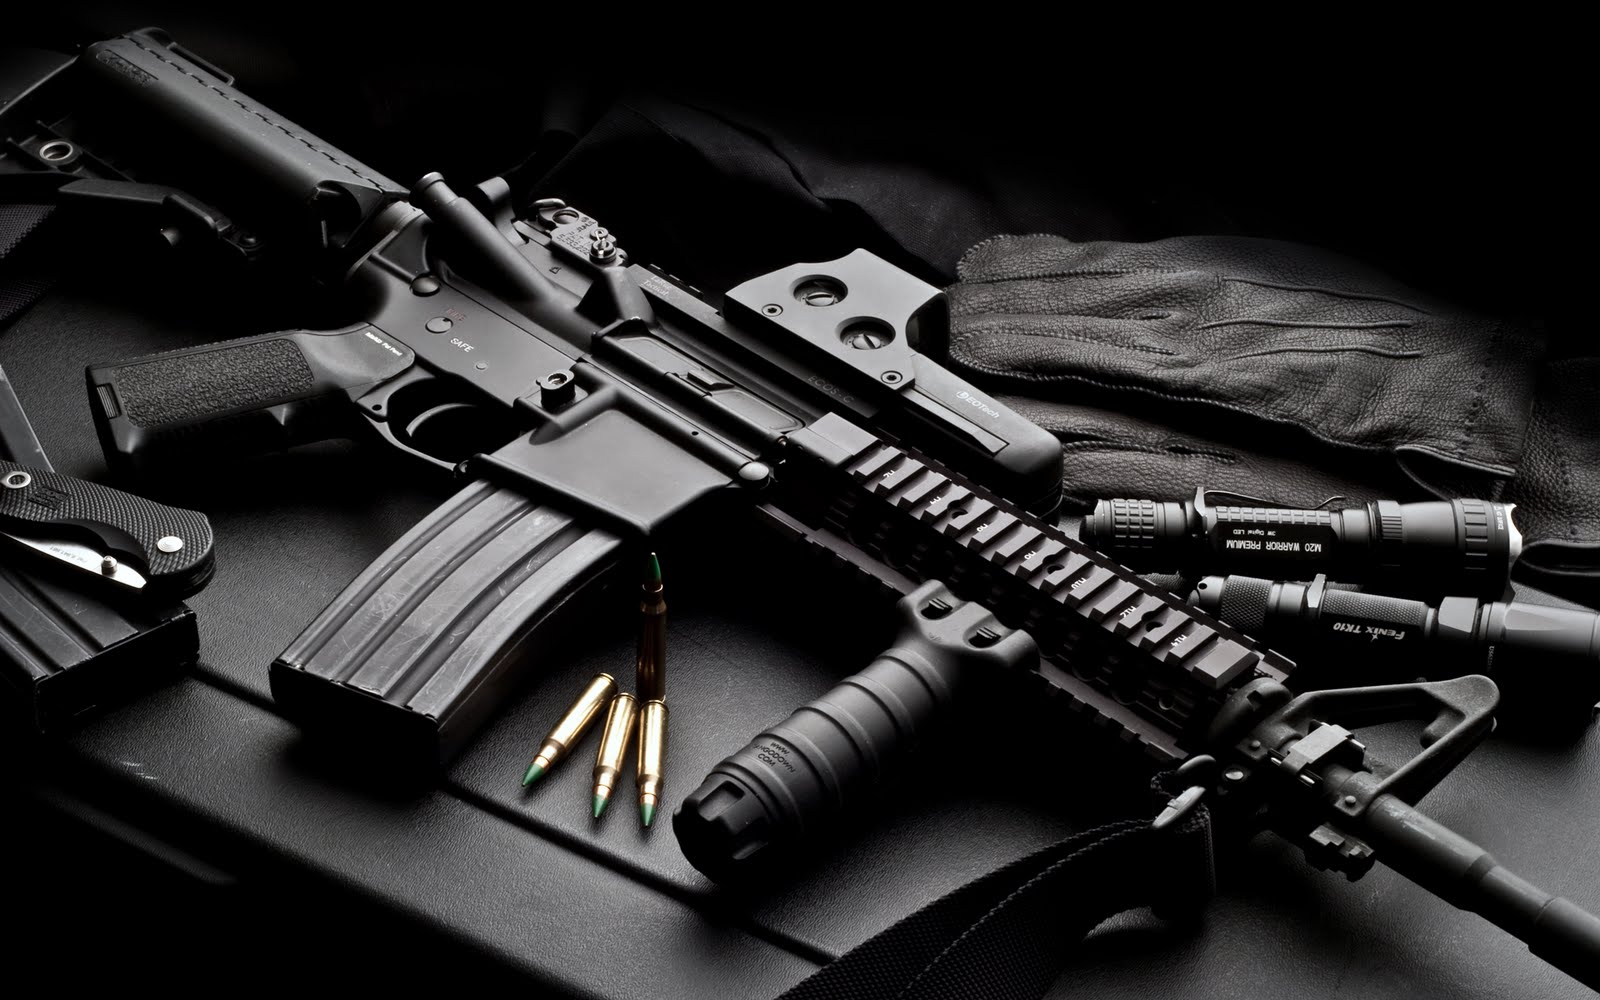 cool gun wallpaper cool gun wallpaper machine gun wallpaper cool gun 1600x1000